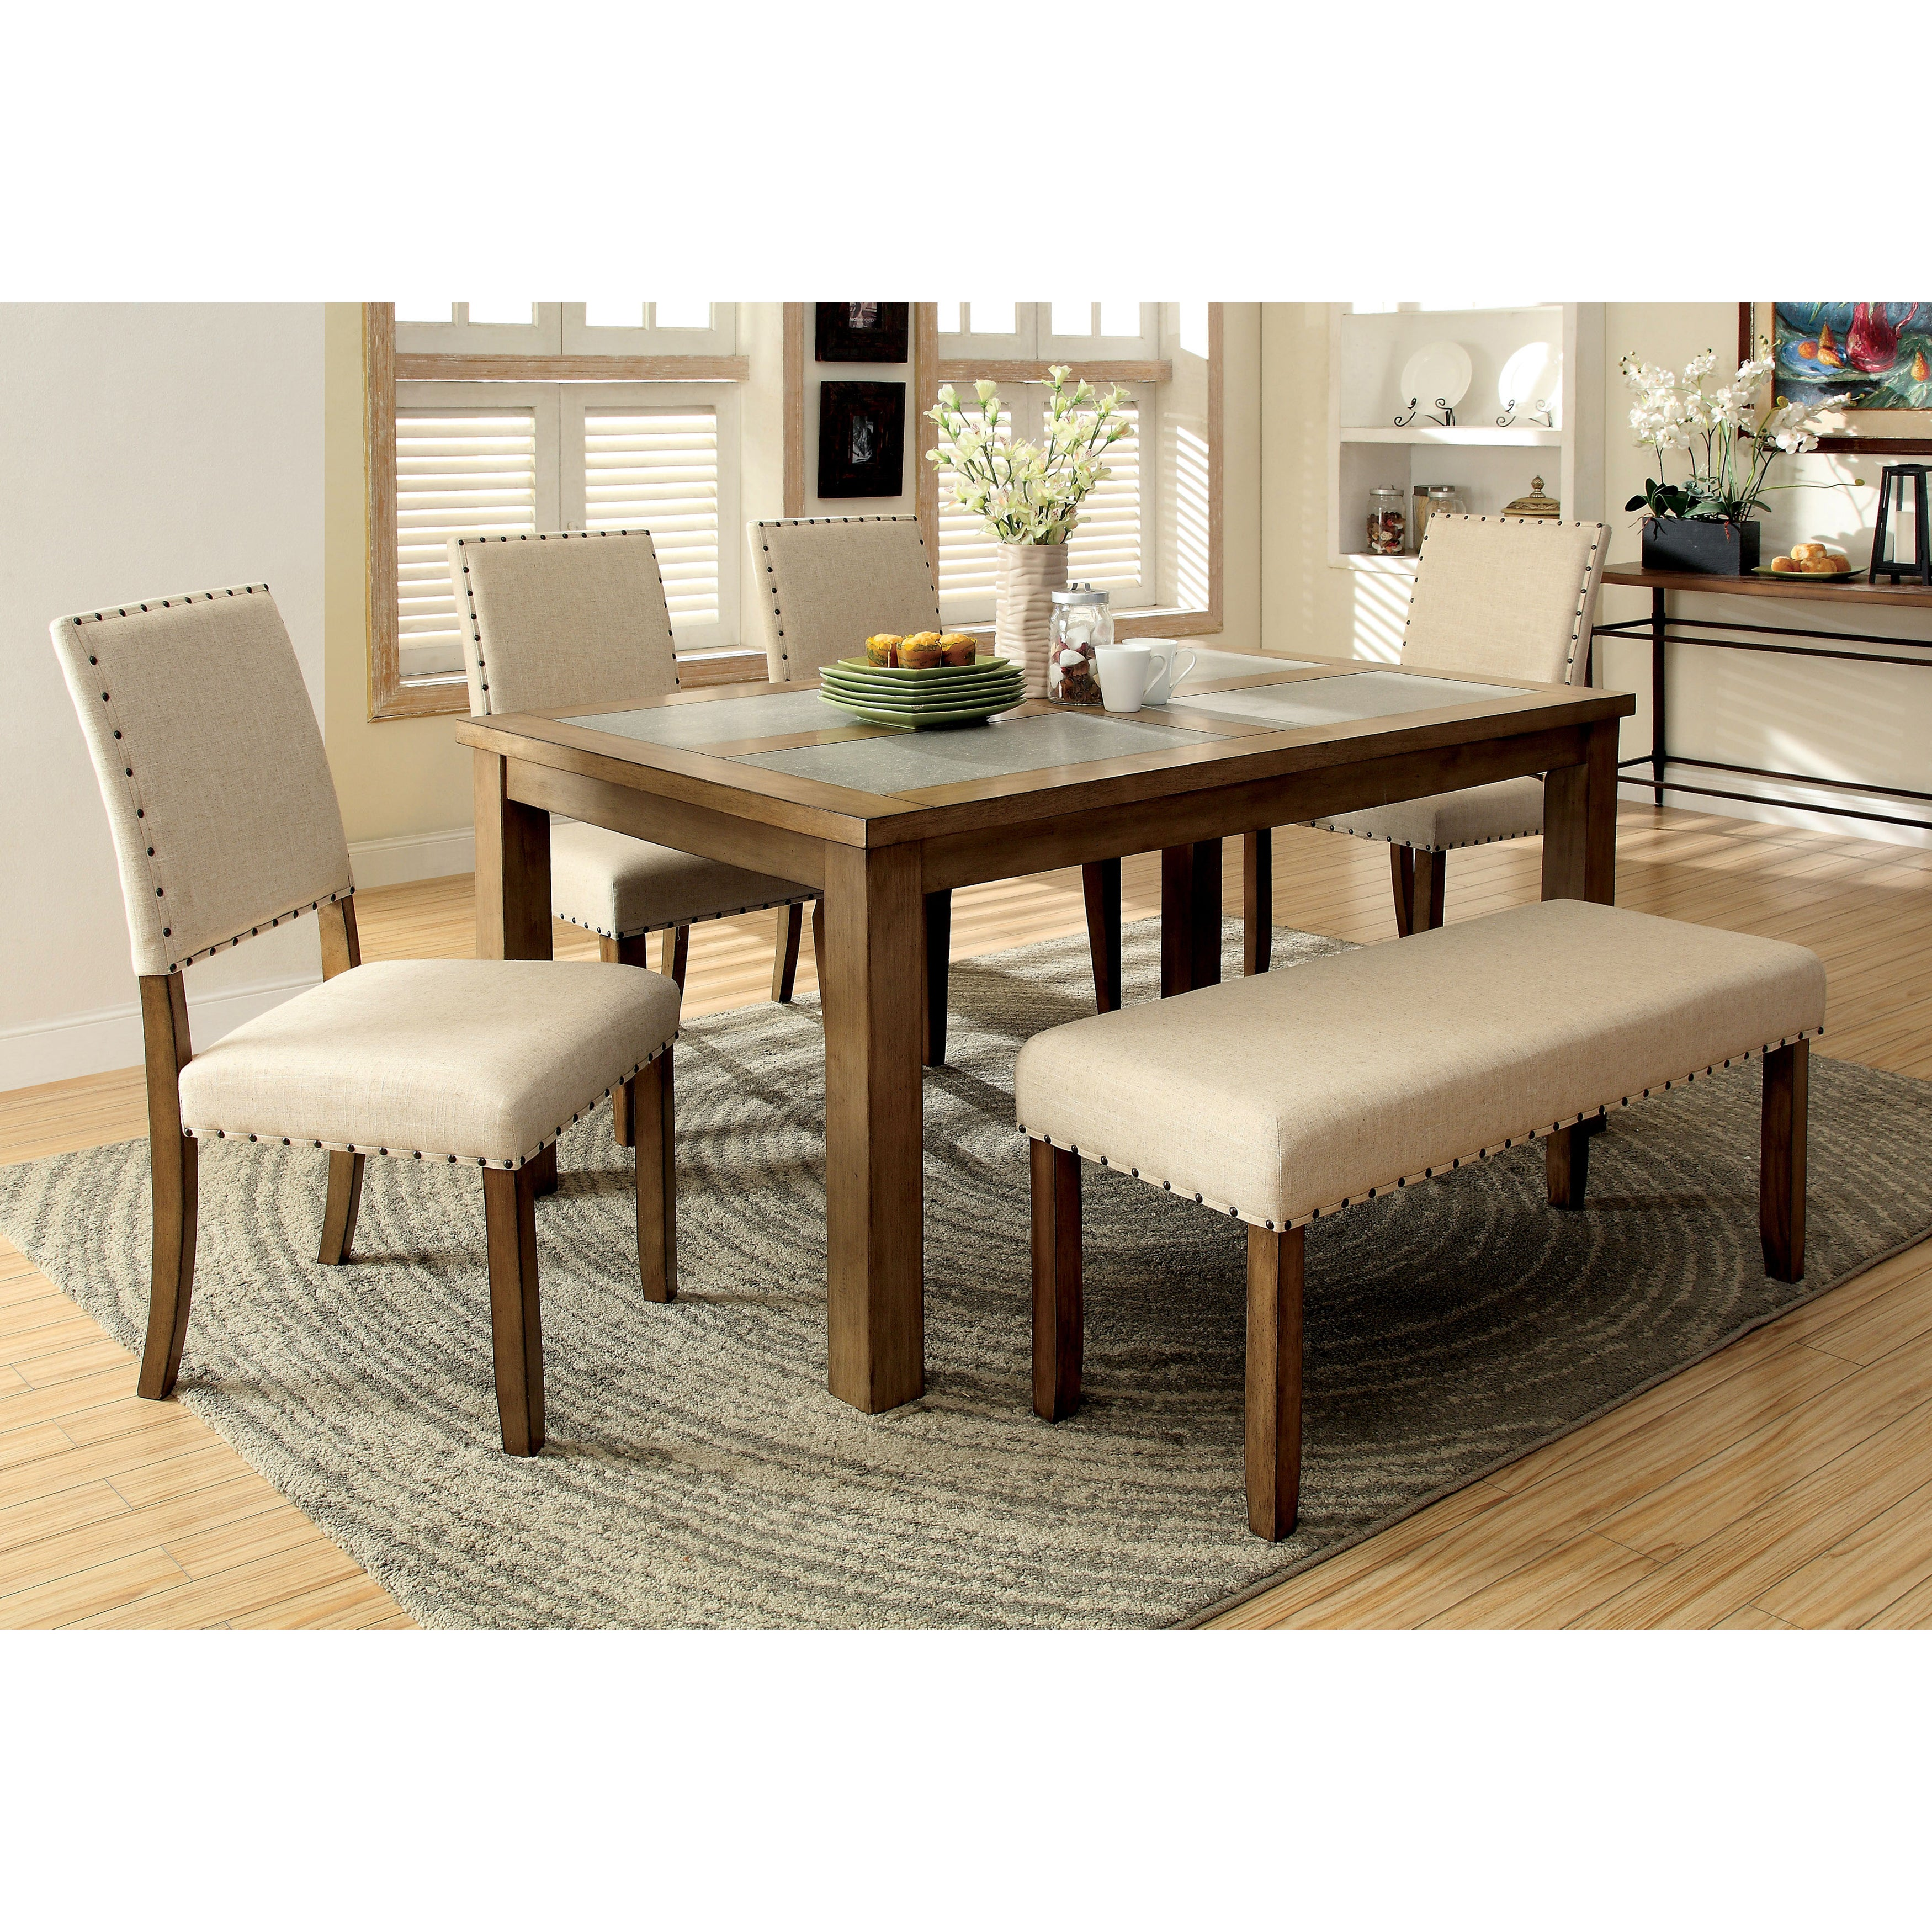 Furniture of America Veronte 6-Piece Stone Top Dining Set...